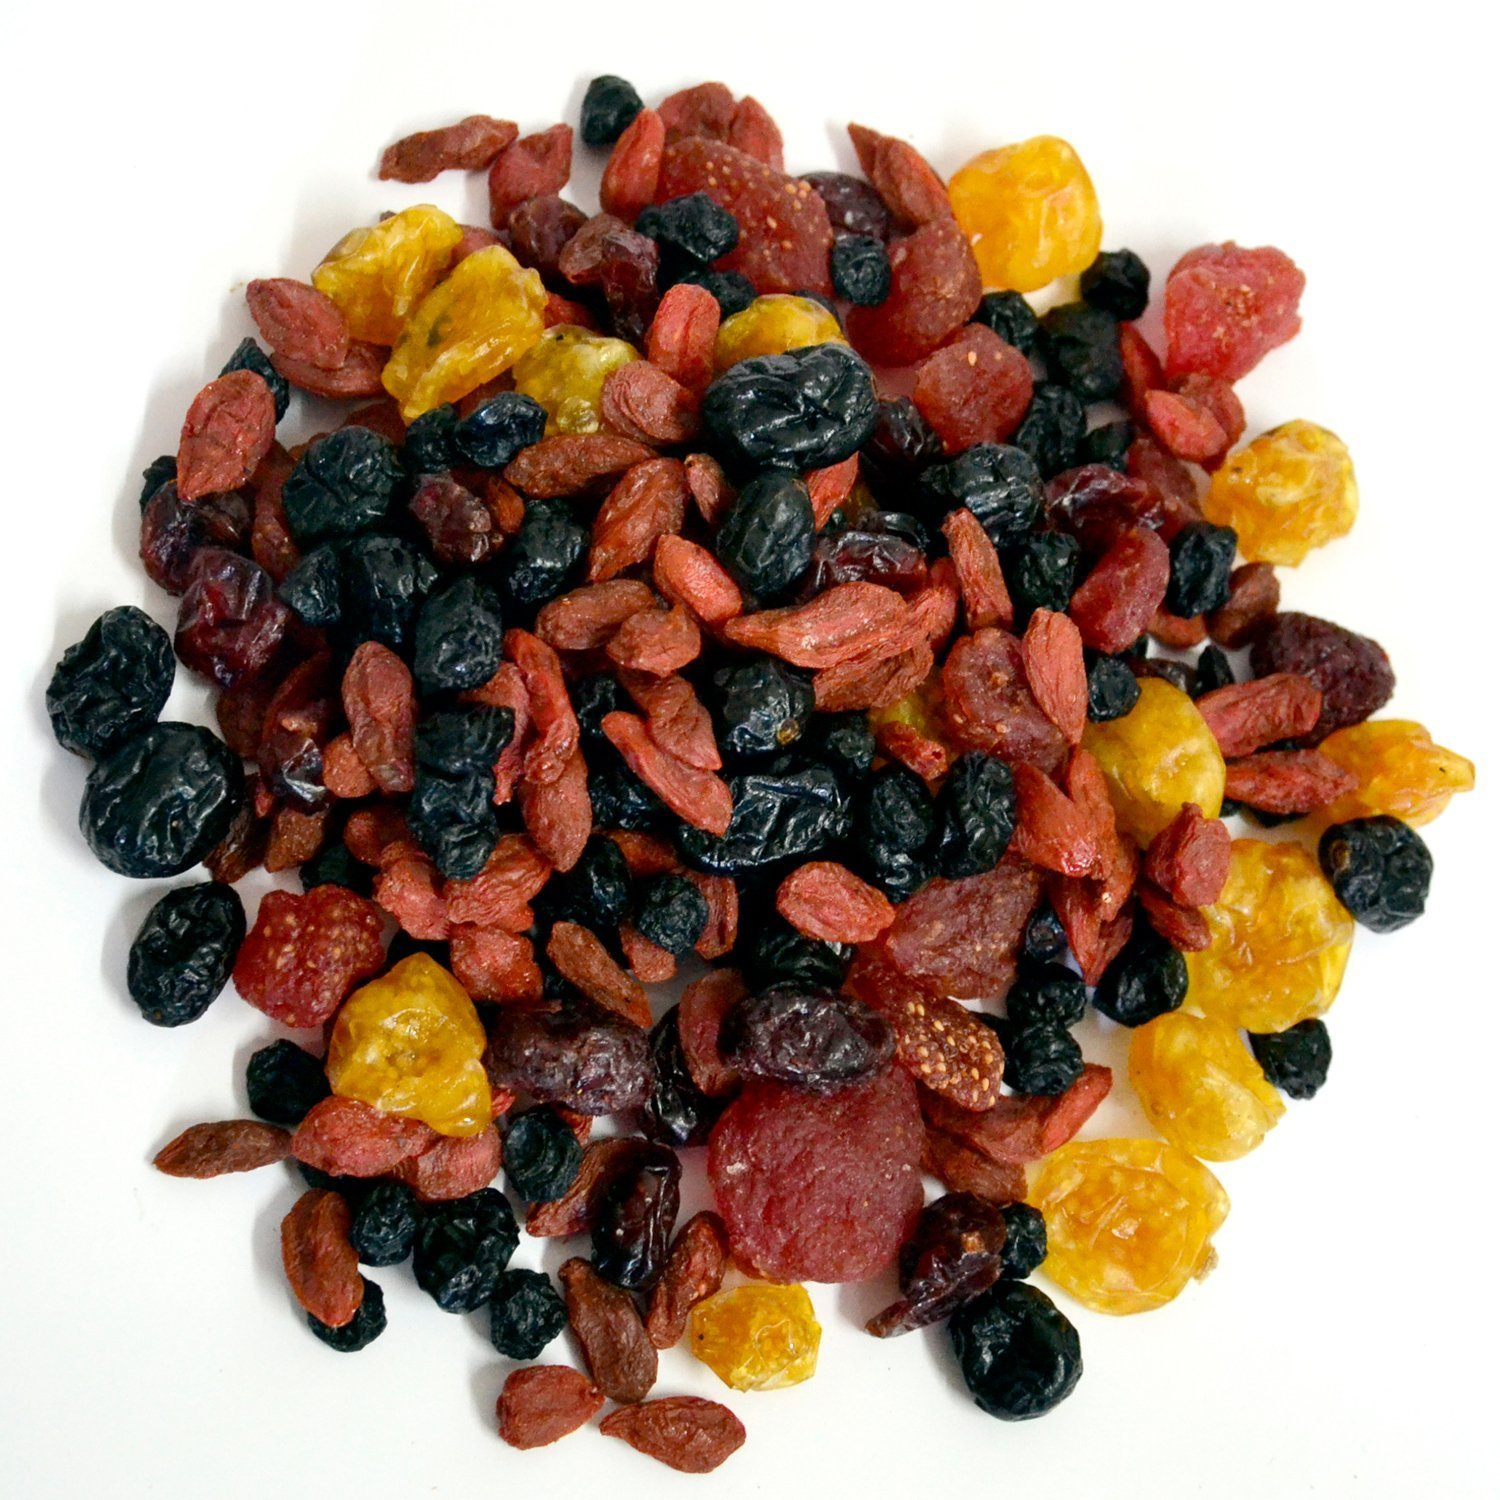 Leeve Multi - Mixed Dried Berries - 200 Gms by Leeve Dry Fruits